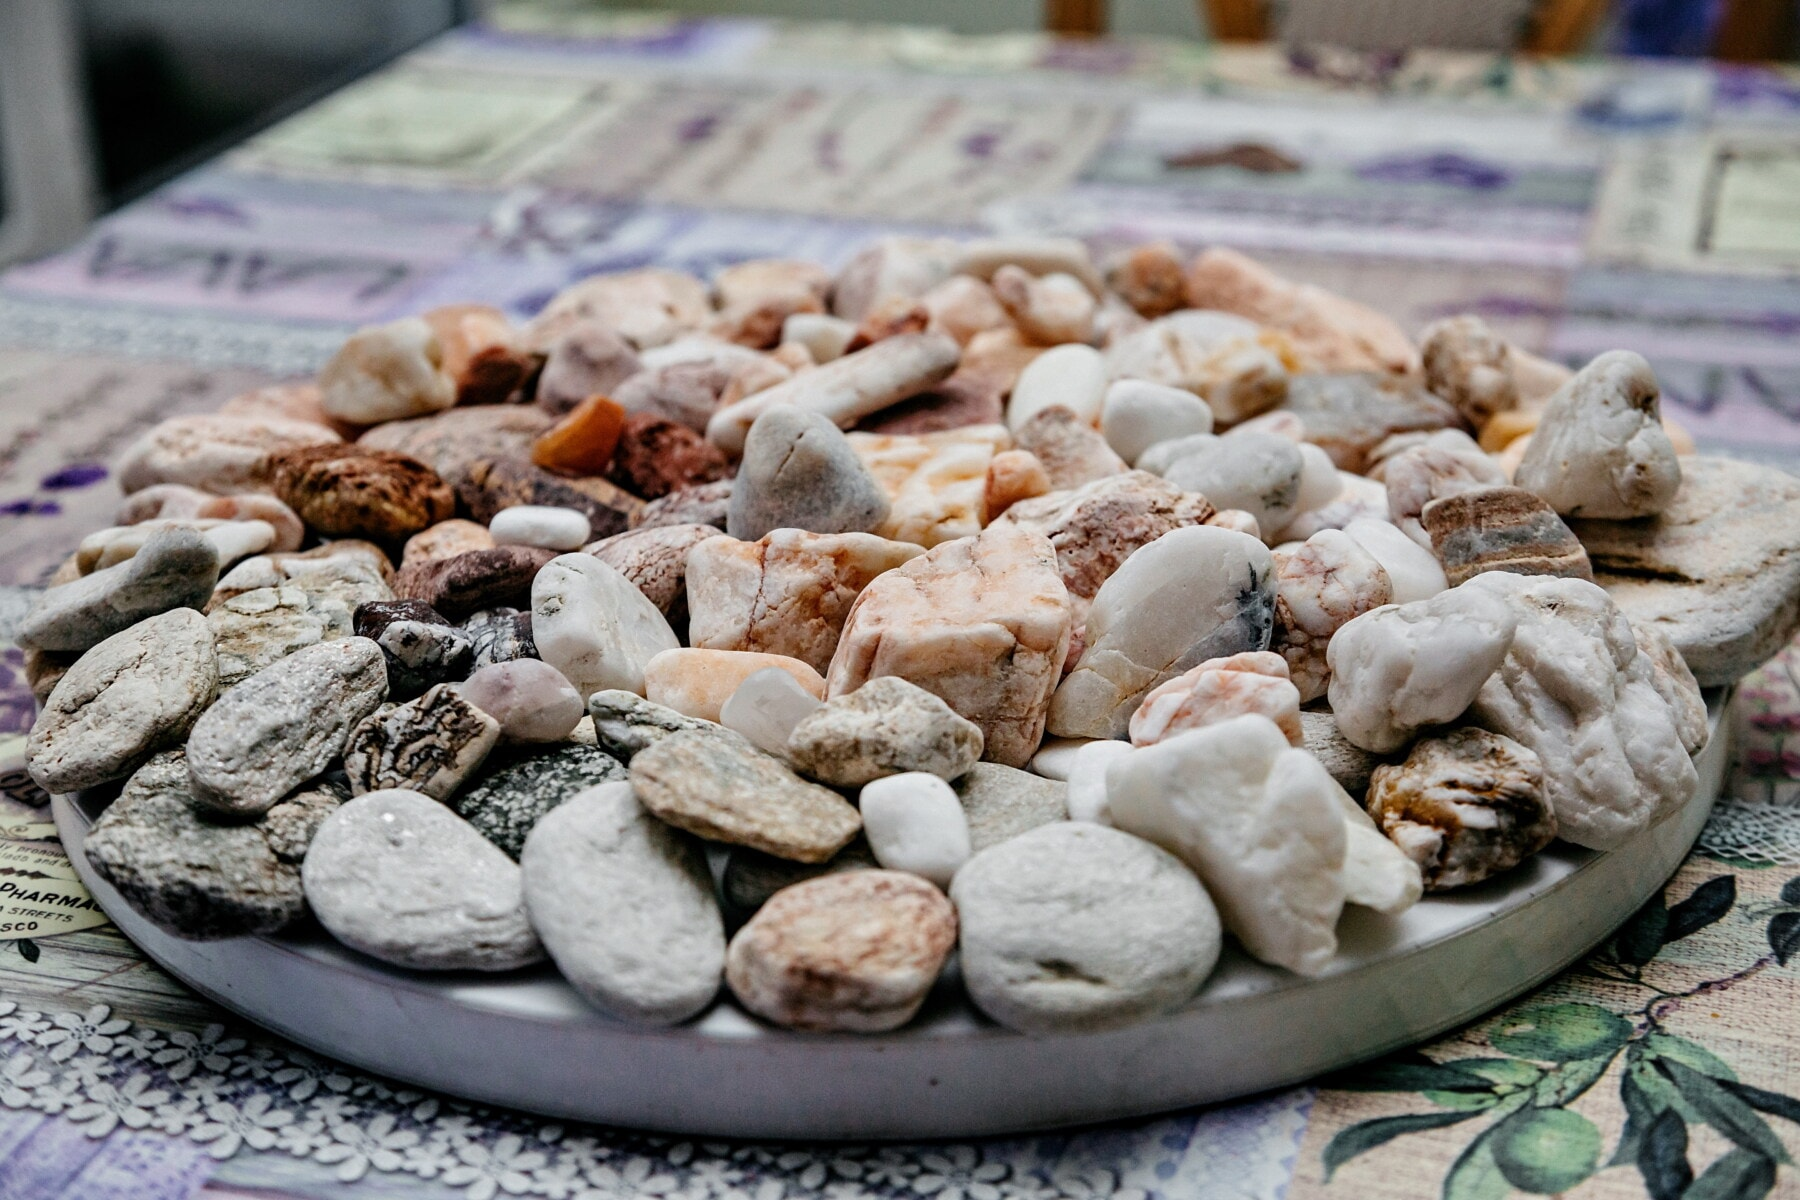 pebbles, small, interior decoration, zen, many, rock, stone, upclose, natural, pebble